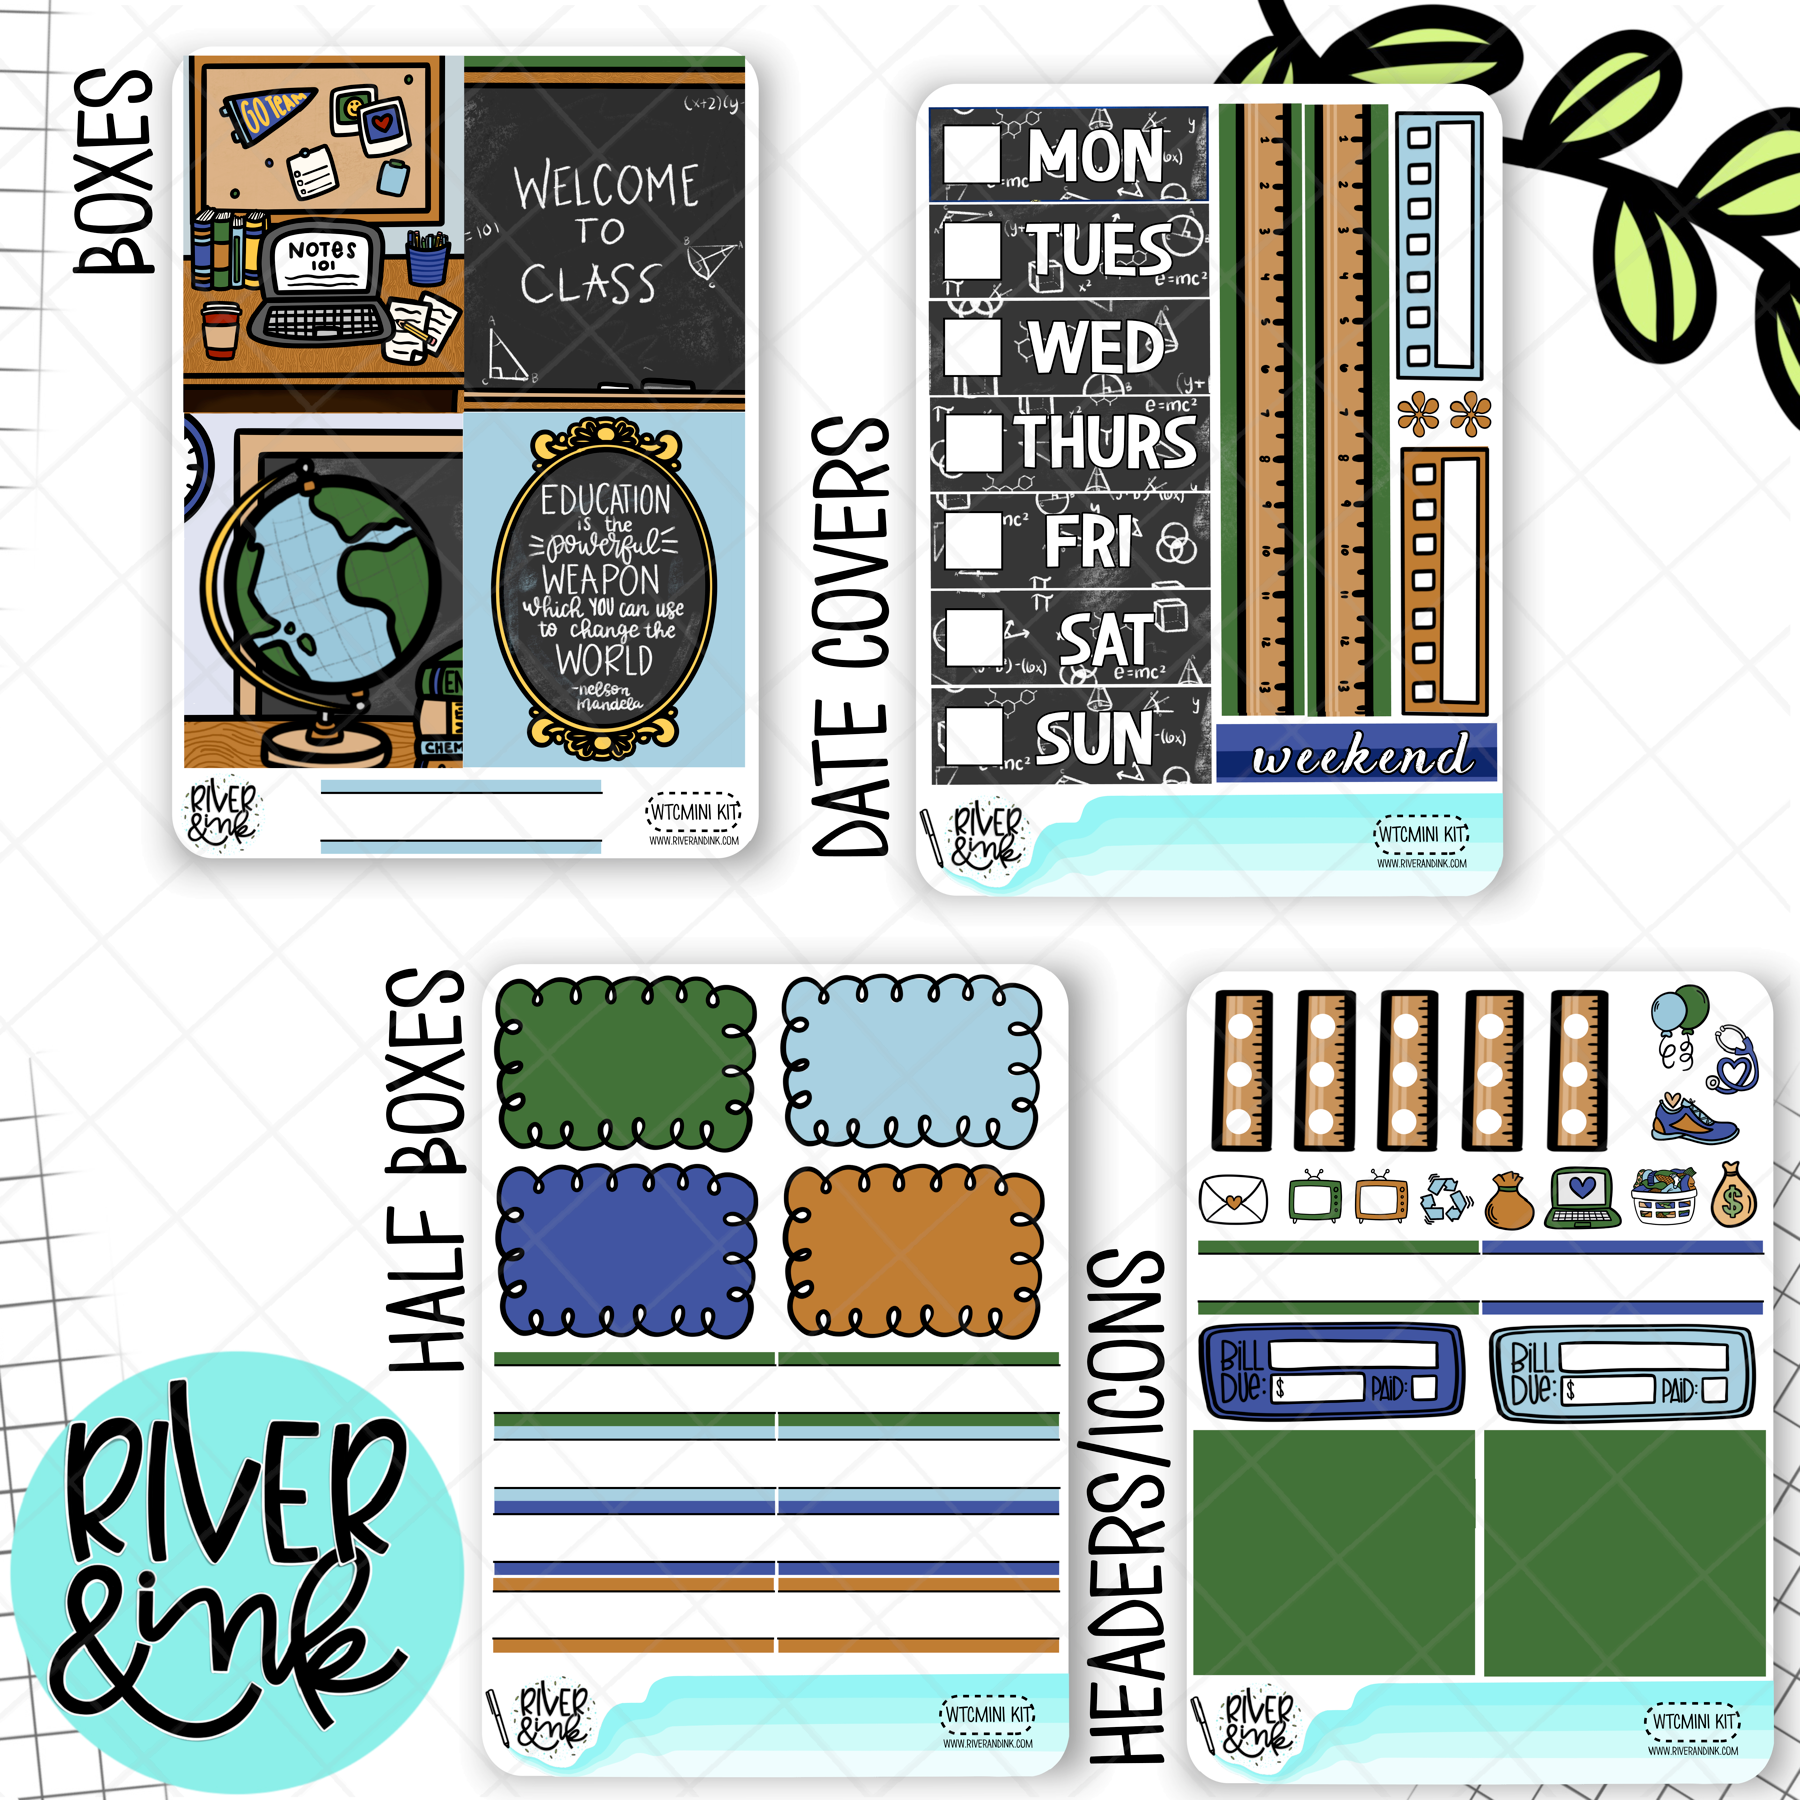 Welcome To Class | Mini Weekly Planner Stickers Kit